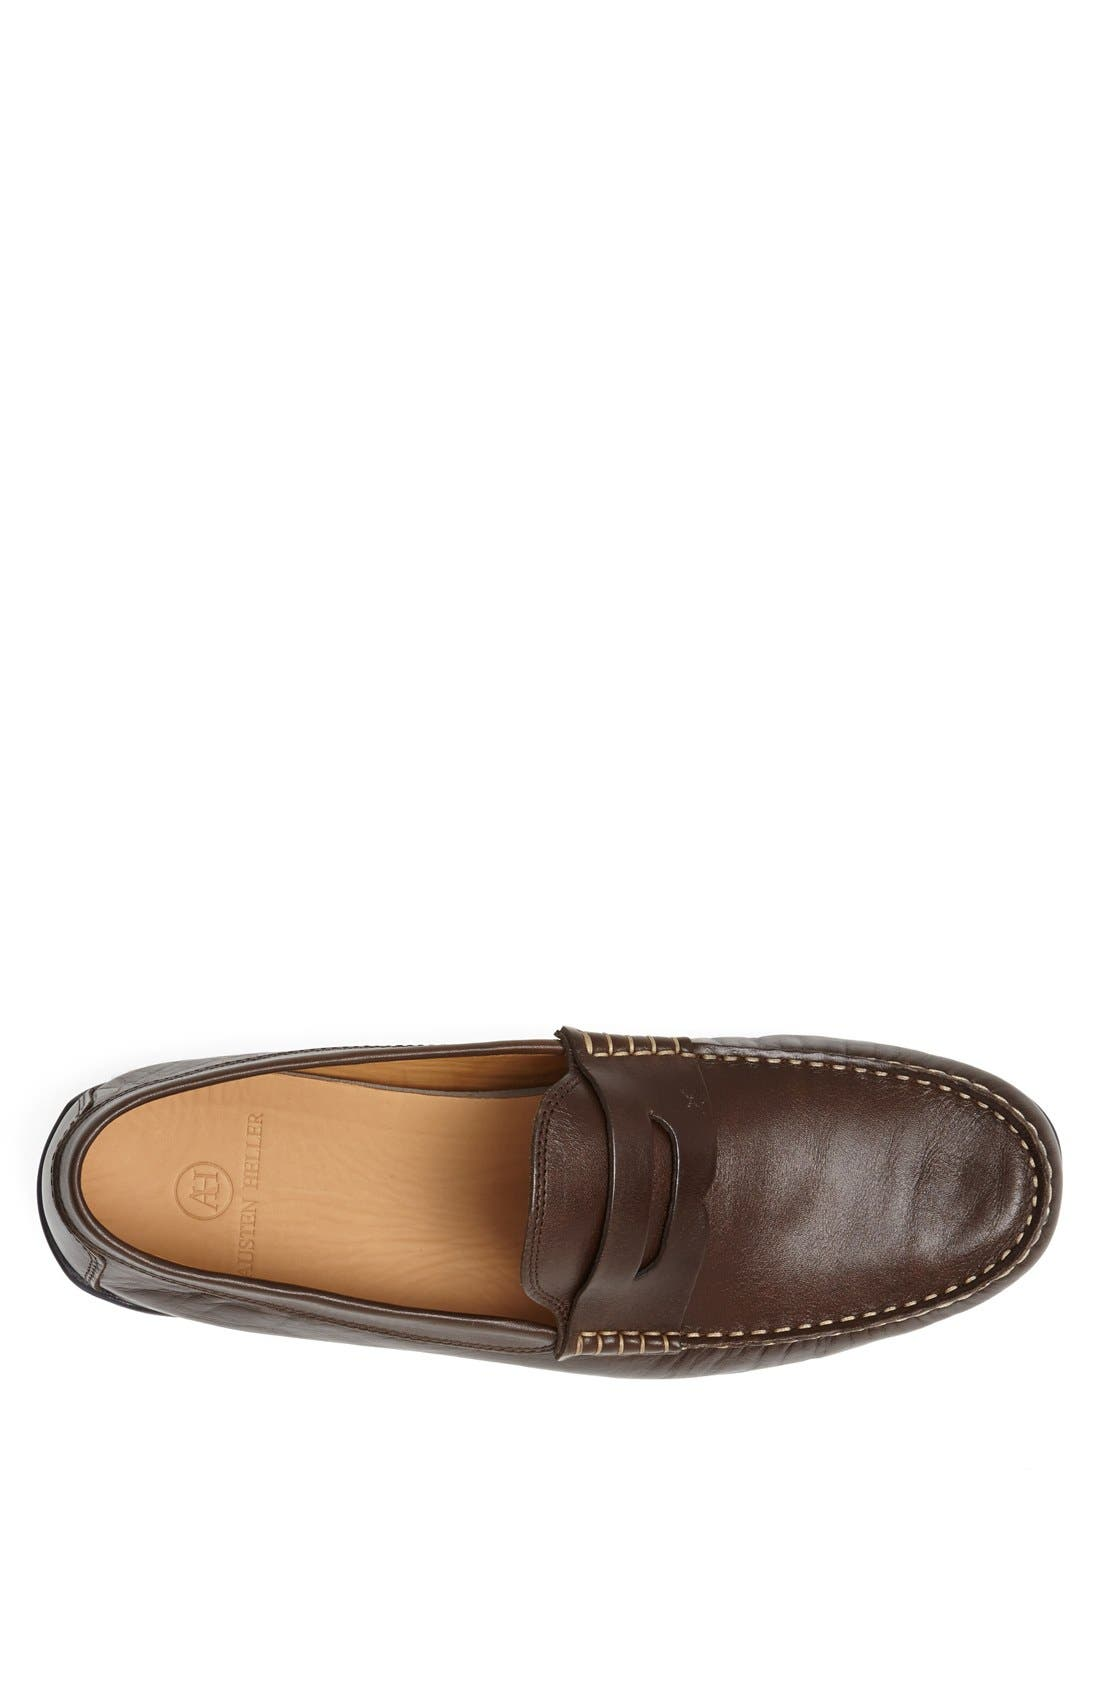 'Strattons' Driving Shoe,                             Alternate thumbnail 8, color,                             BROWN LEATHER/ NAVY